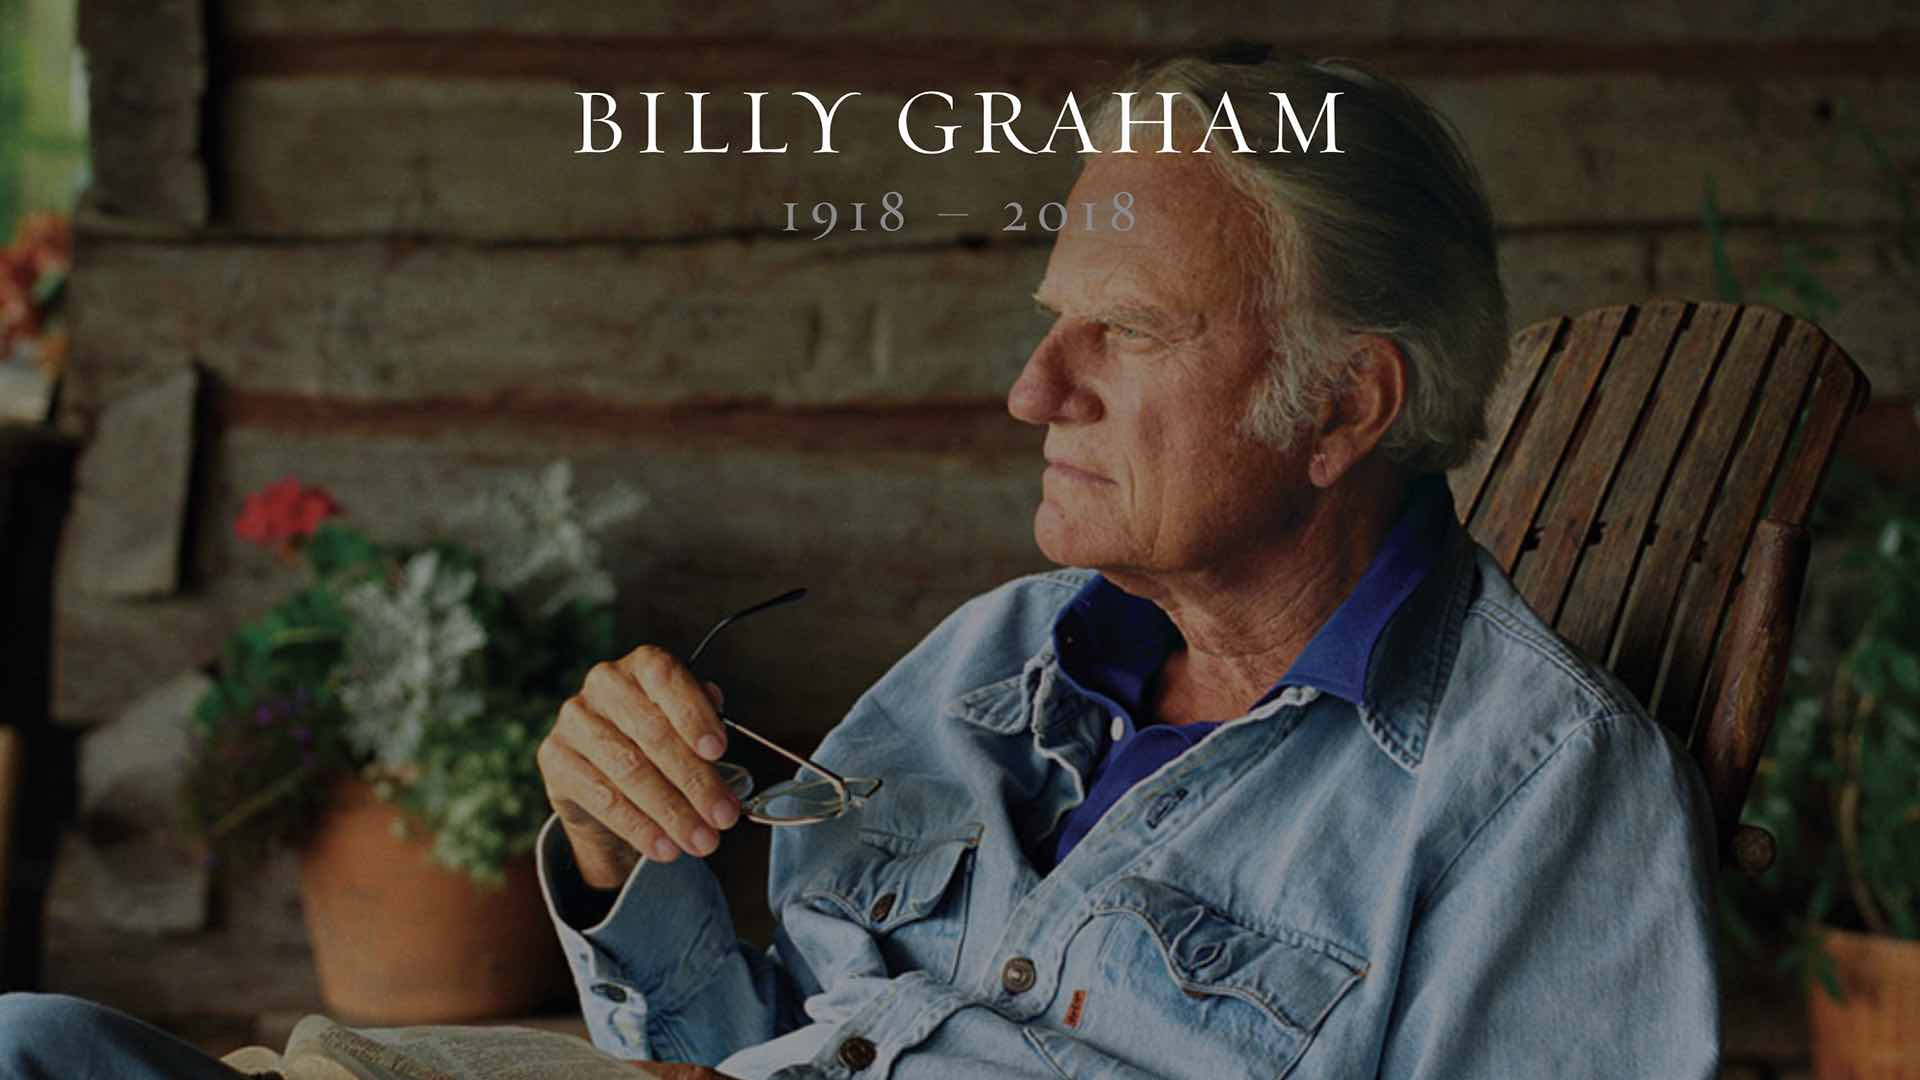 thumbnail image for Alistair Begg Remembers Billy Graham